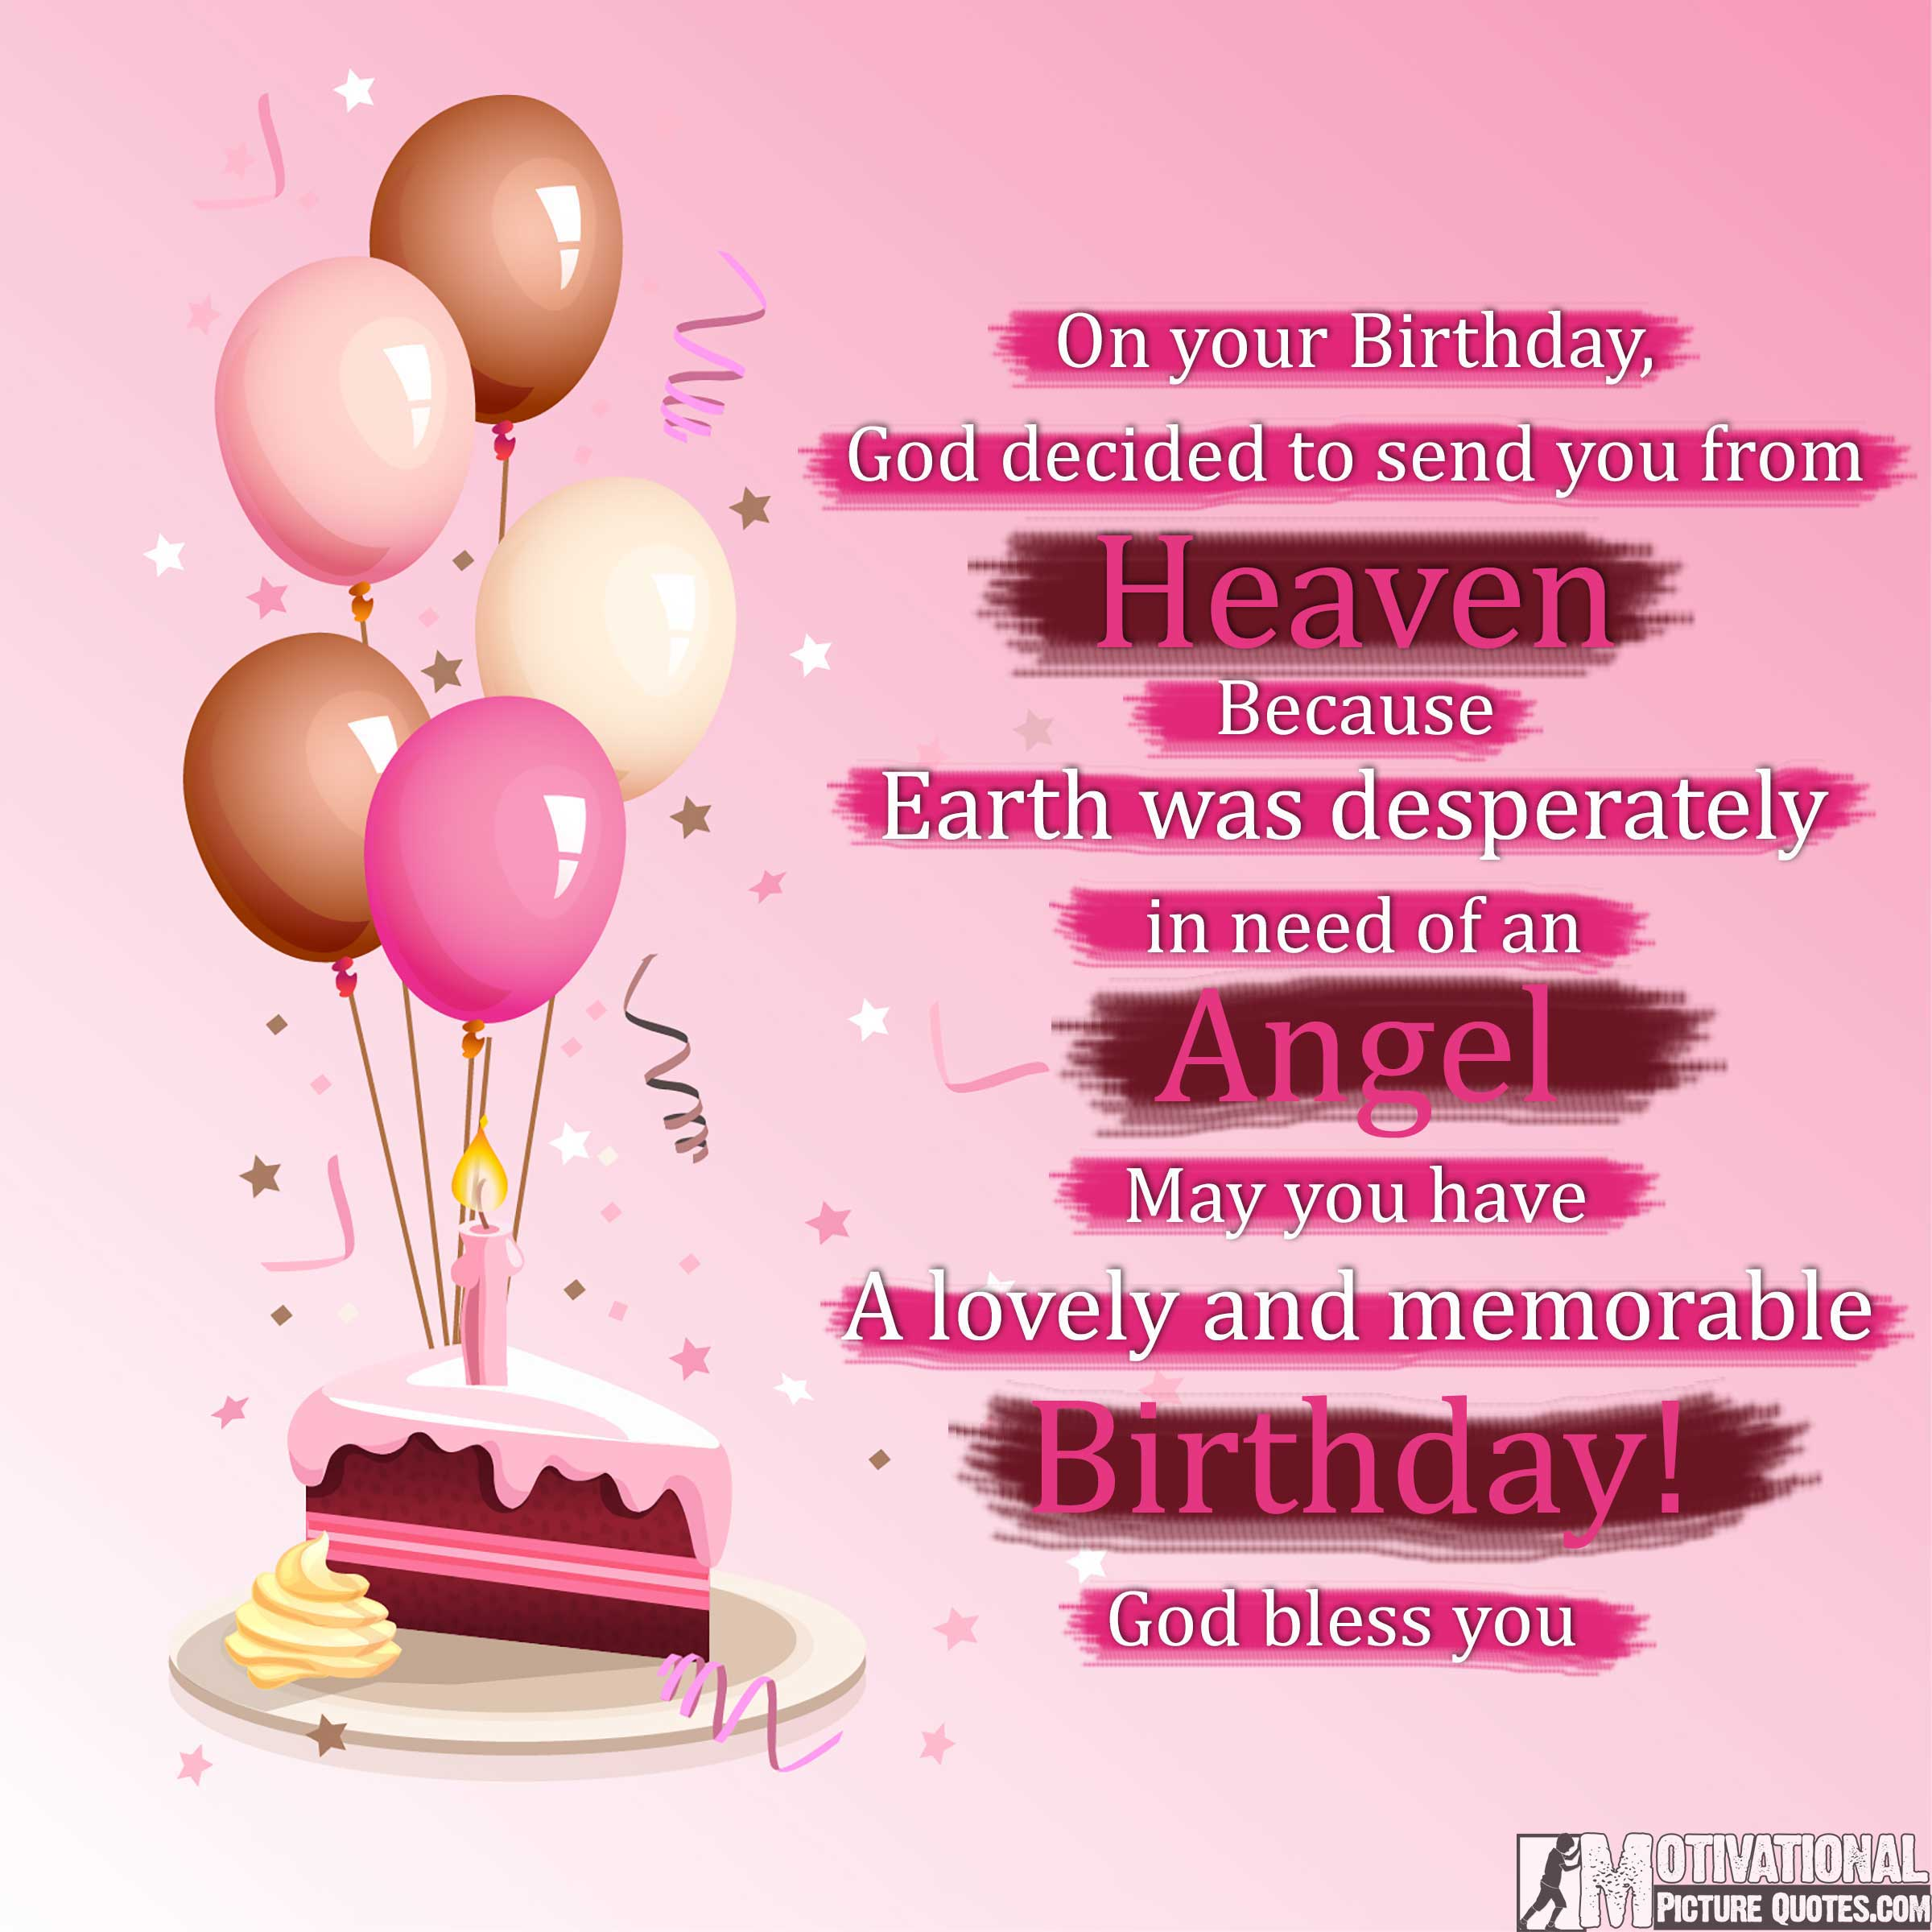 35 inspirational birthday quotes images insbright birthday quotes for wife kristyandbryce Gallery